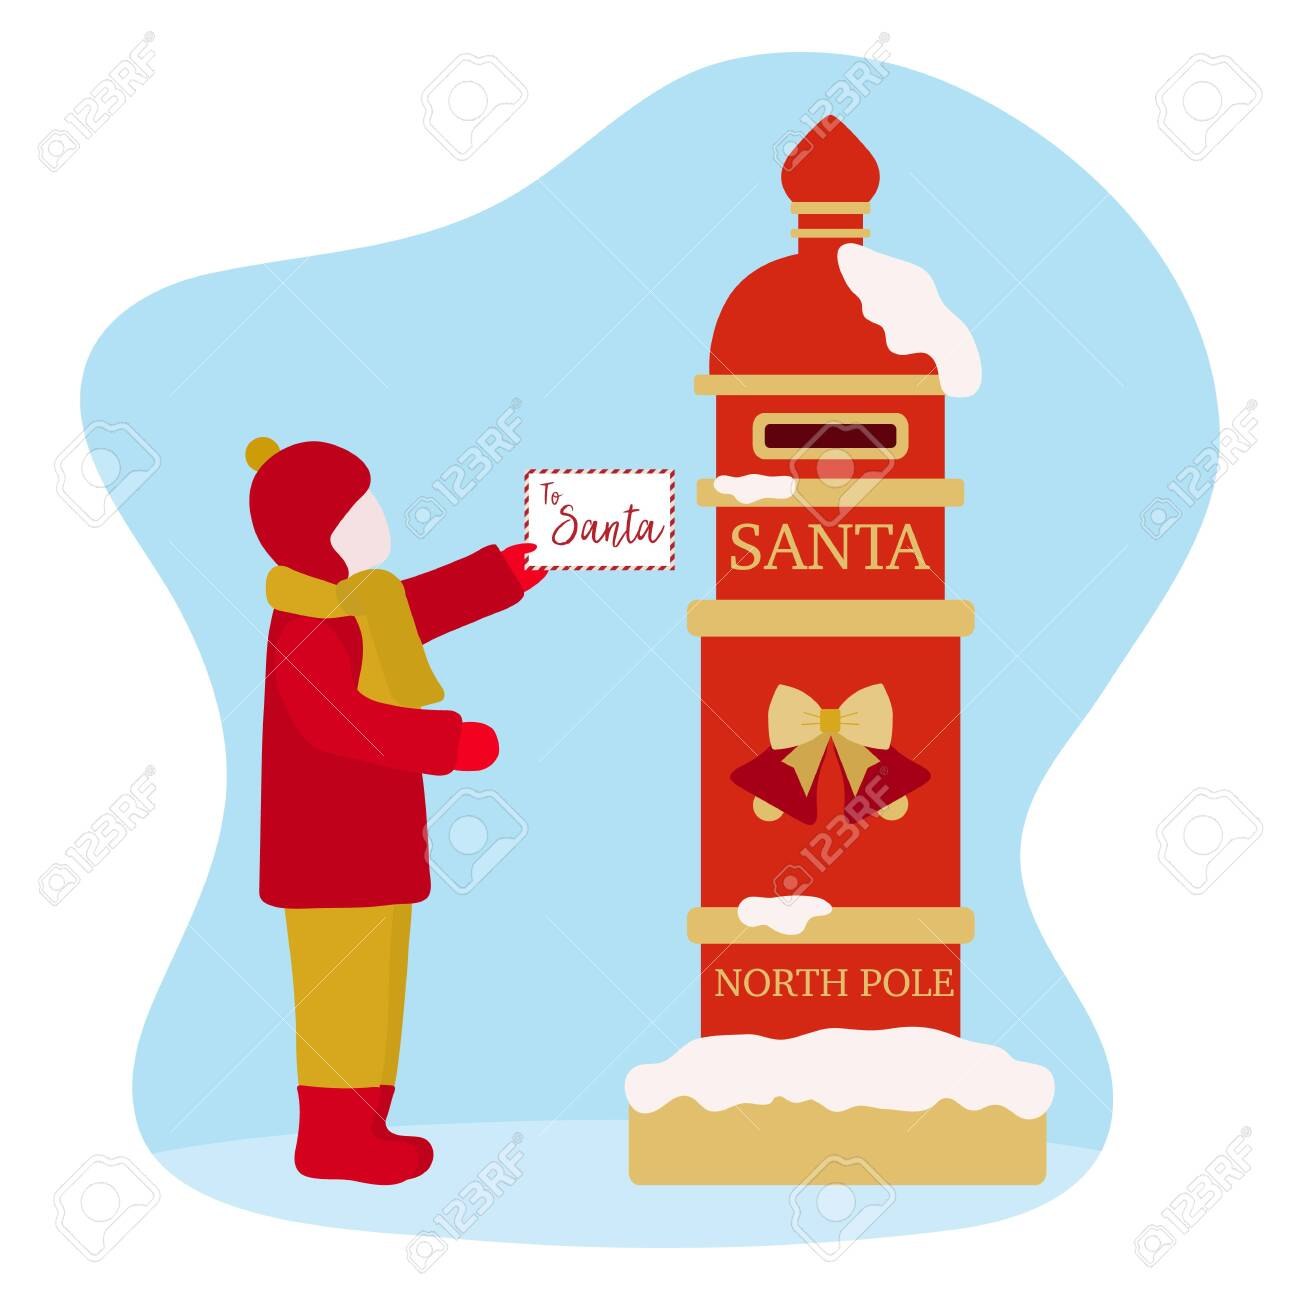 Christmas Wish List 2020.Happy New Year 2020 Merry Christmas Vector Illustration Santa S